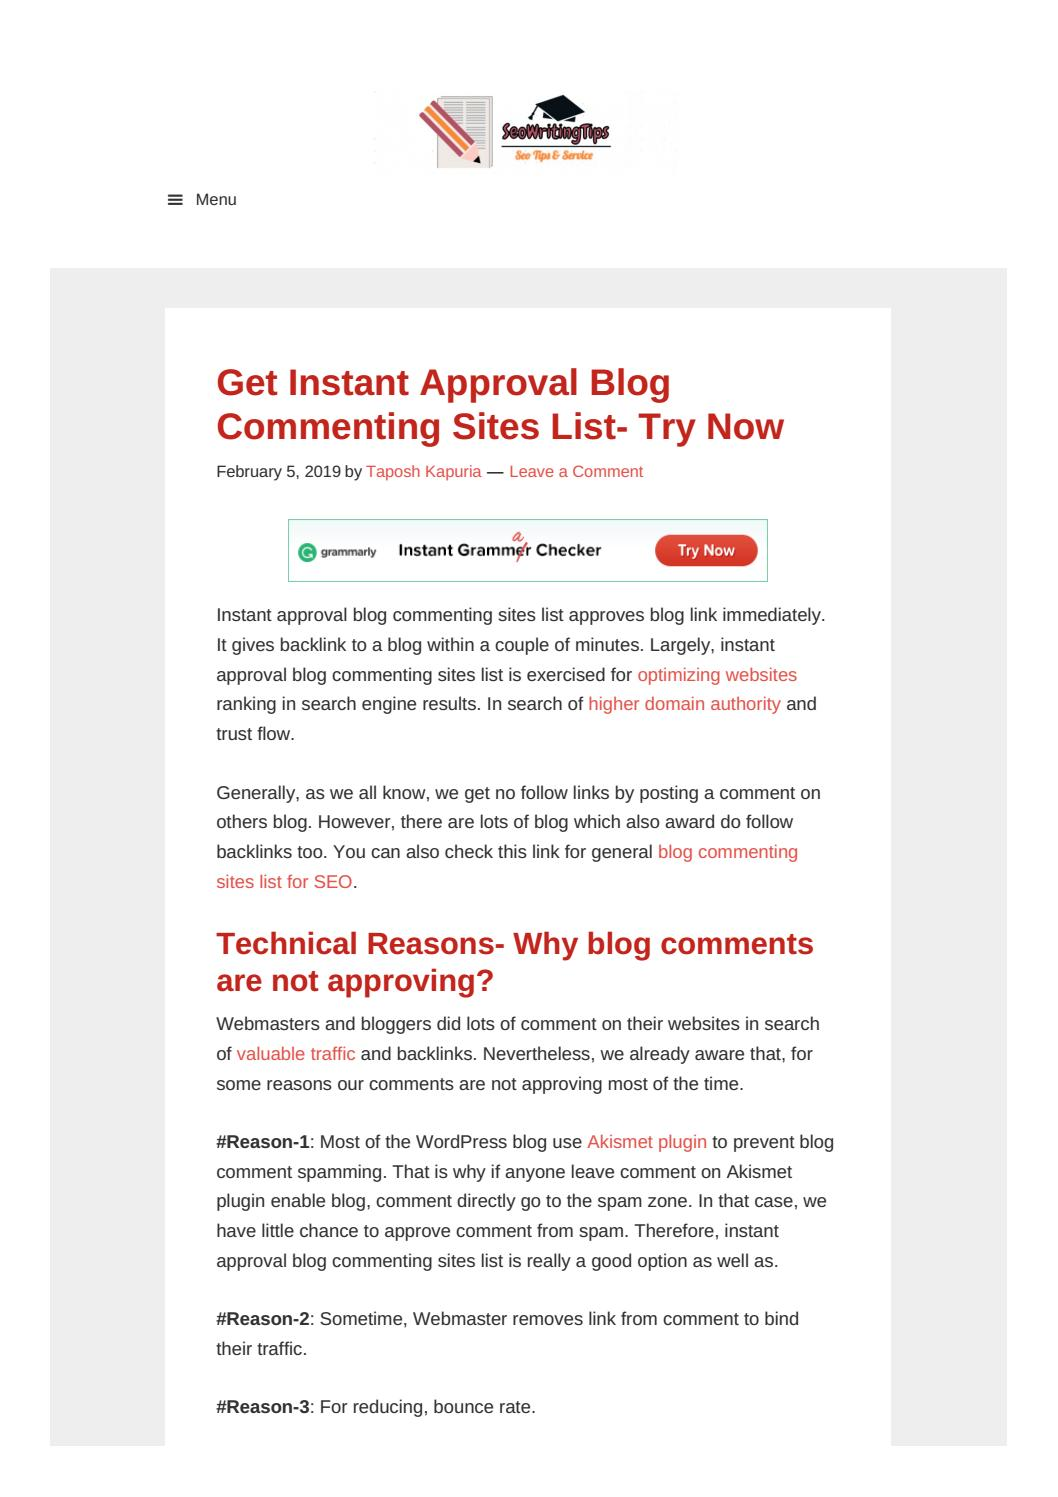 Instant Approval Blog Commenting Sites List by